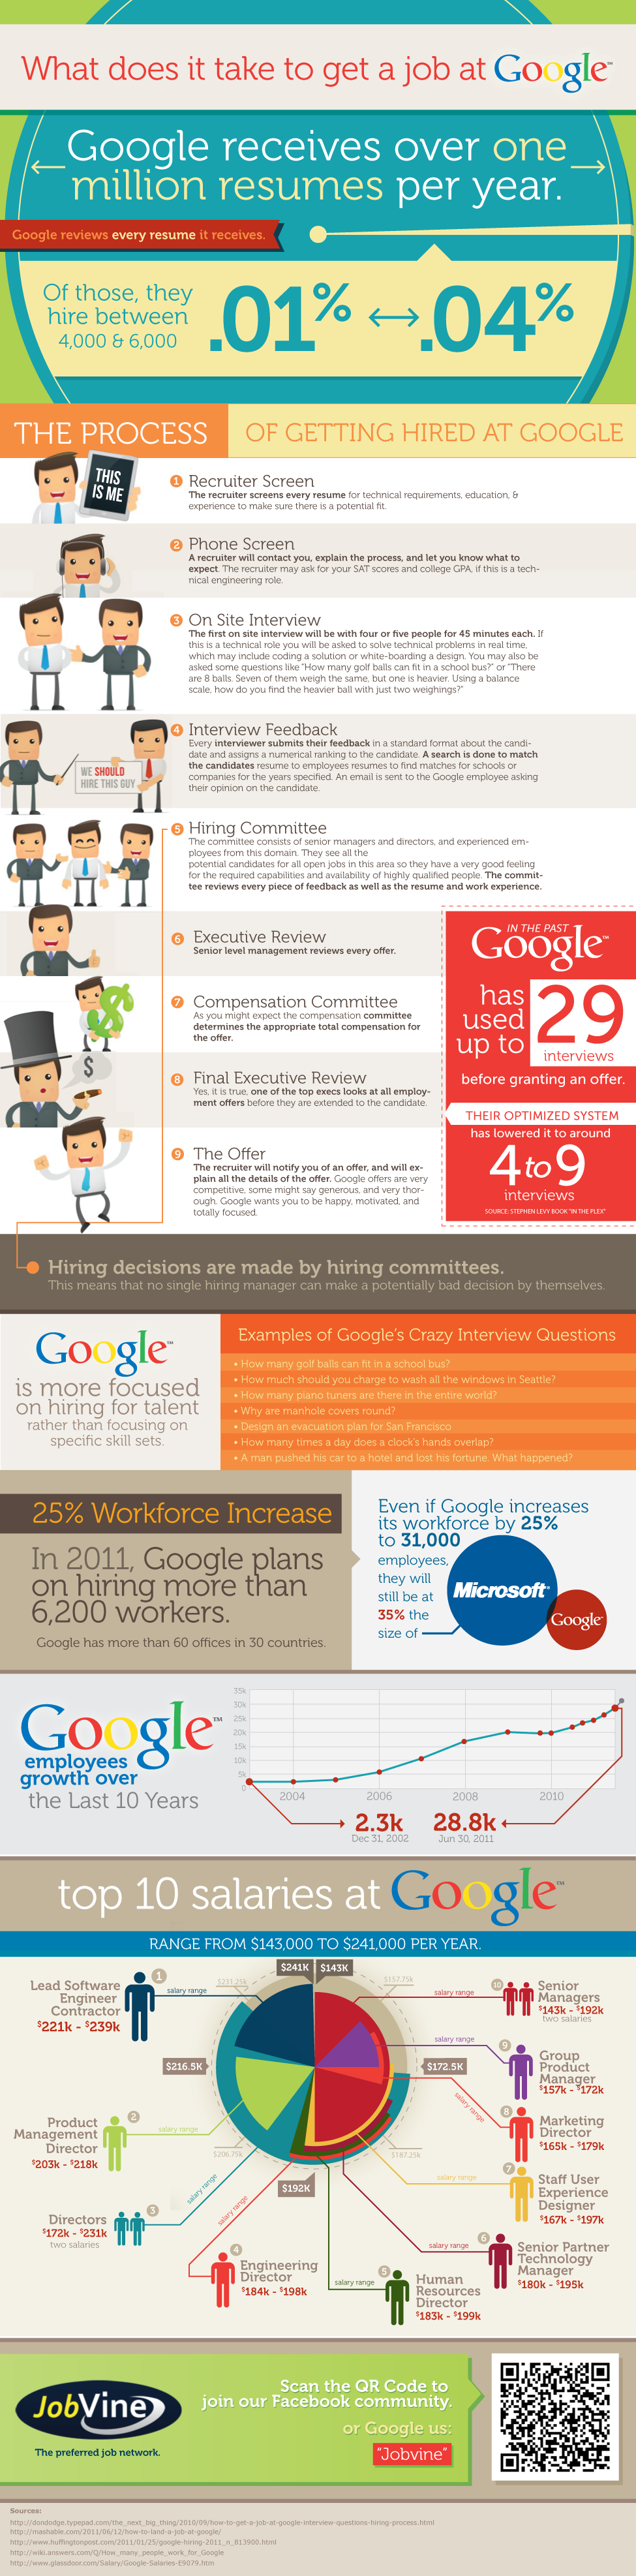 What does it take to get a job at Google [Infographic].